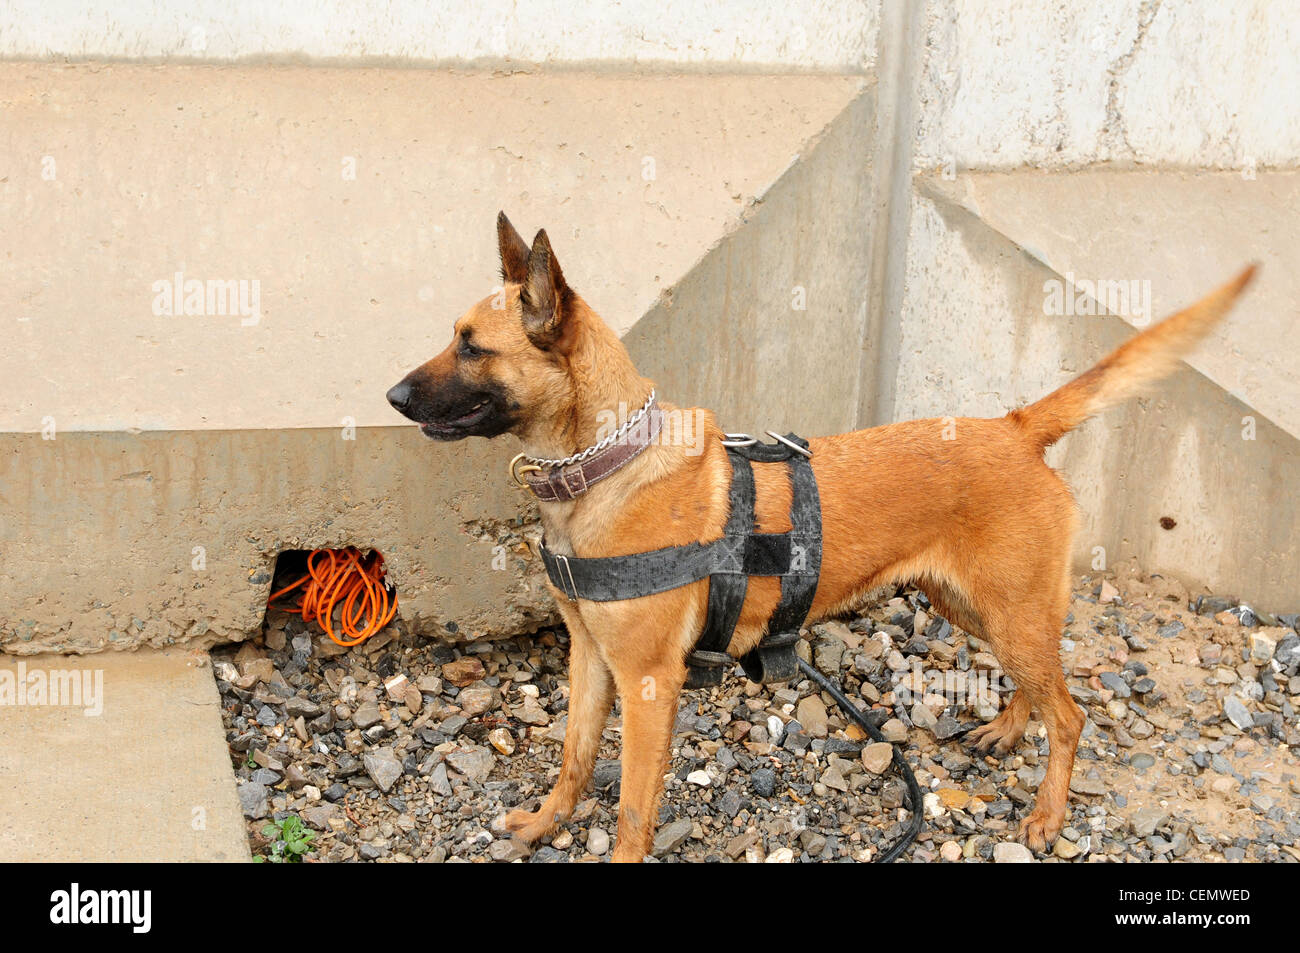 Afghanistan (February 17, 2012) Sgt. Anouska a Tactical Explosive Detection Dog (TEDD) has just found detonation - Stock Image